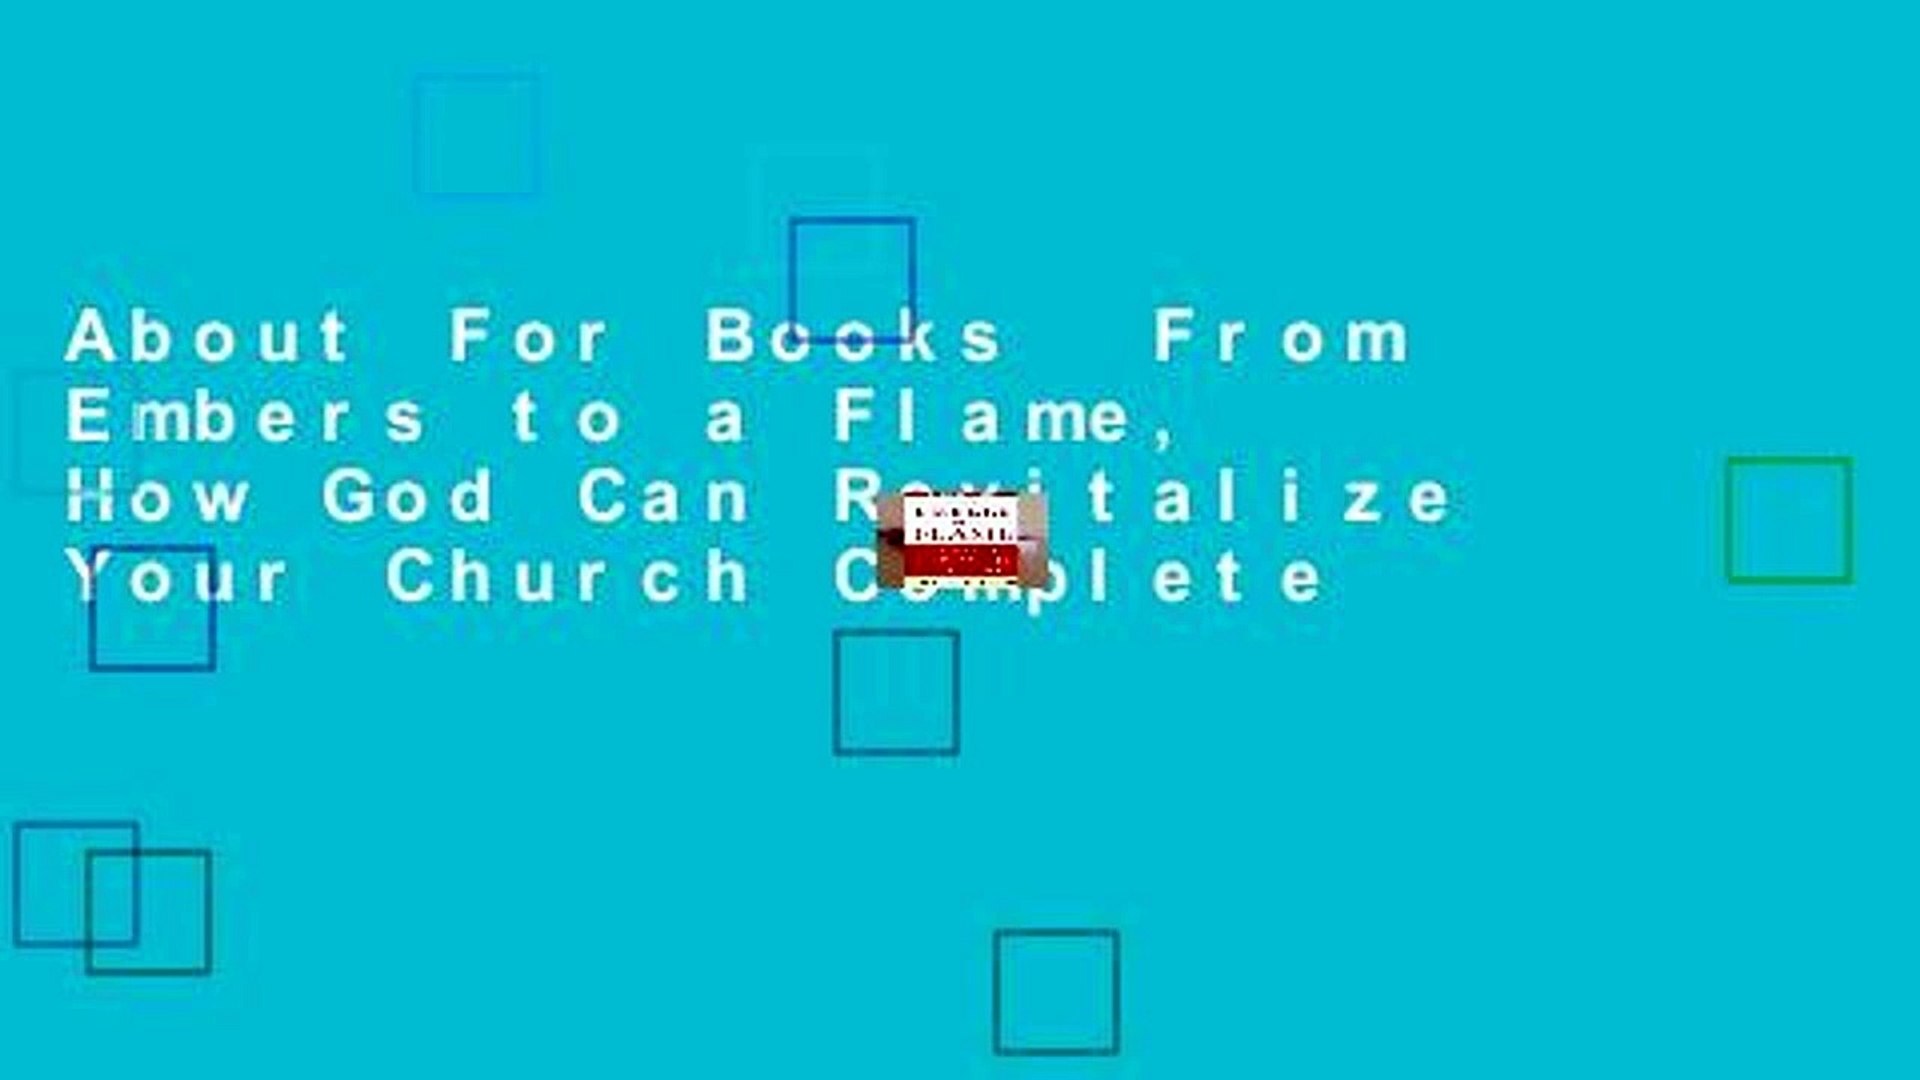 About For Books  From Embers to a Flame, How God Can Revitalize Your Church Complete